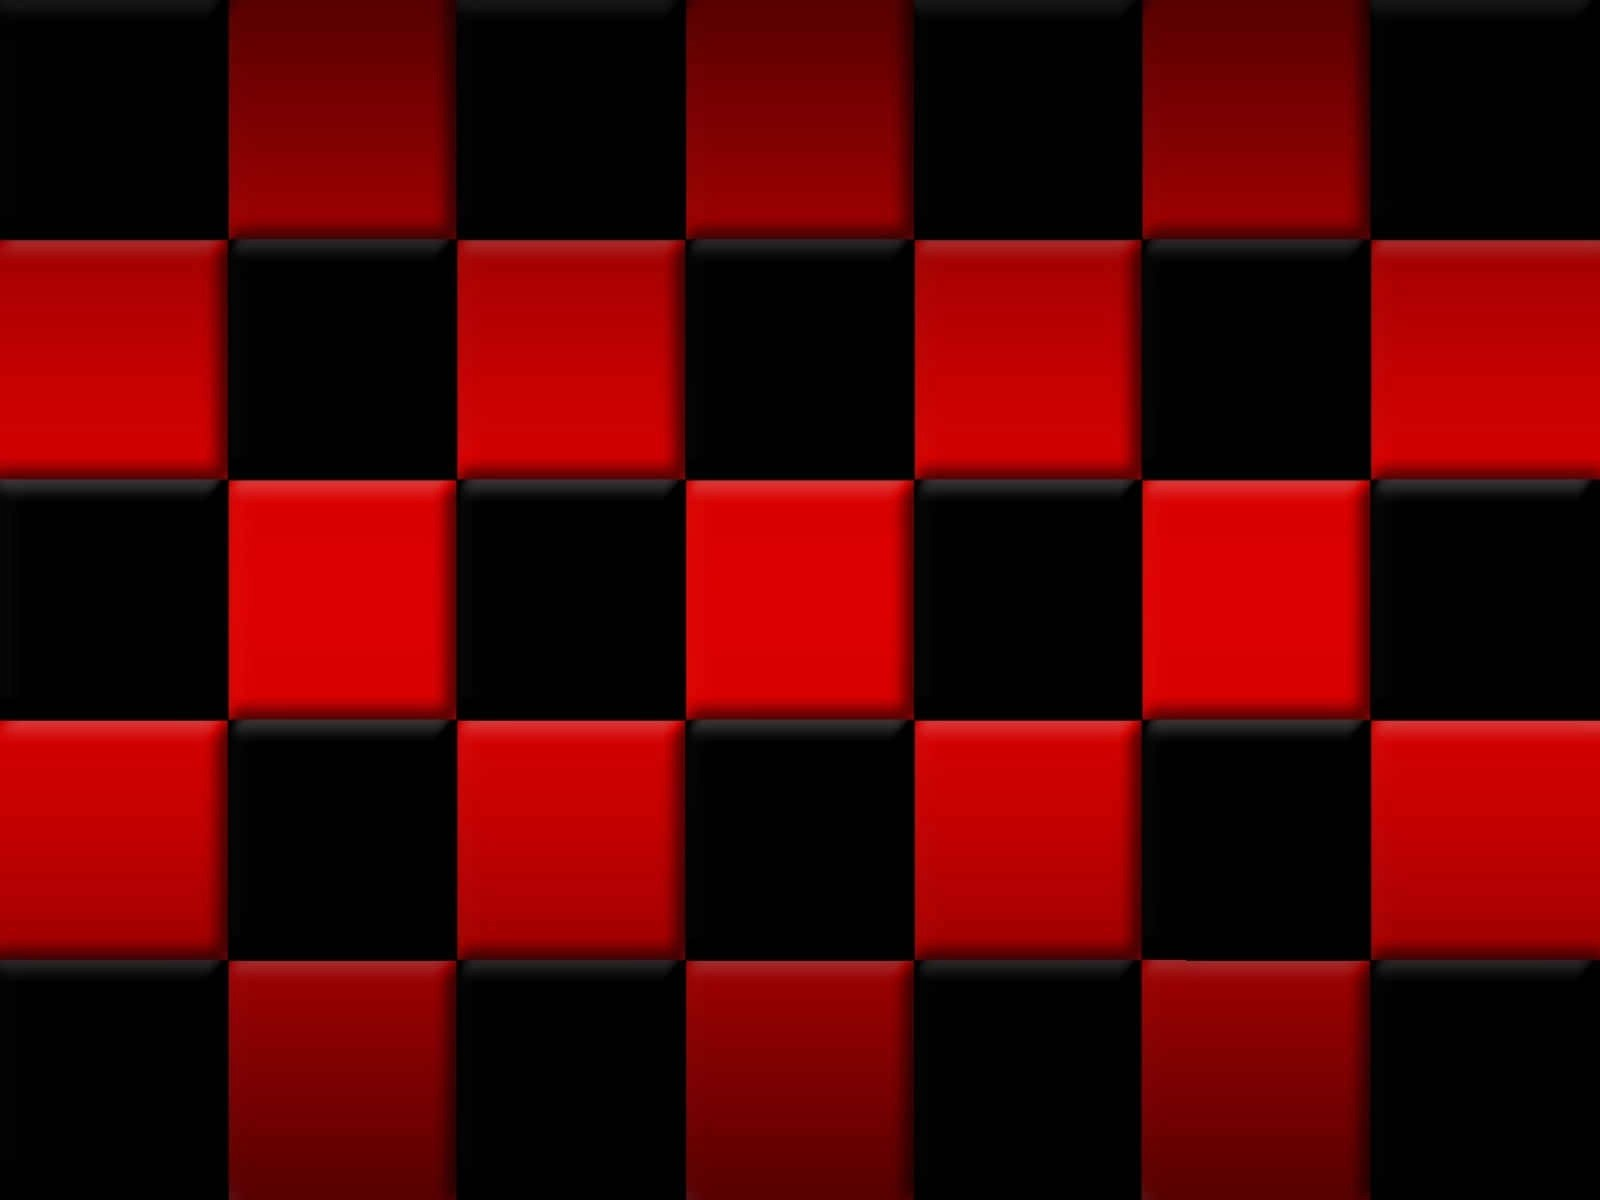 22 Red  Black Wallpapers Backgrounds Images